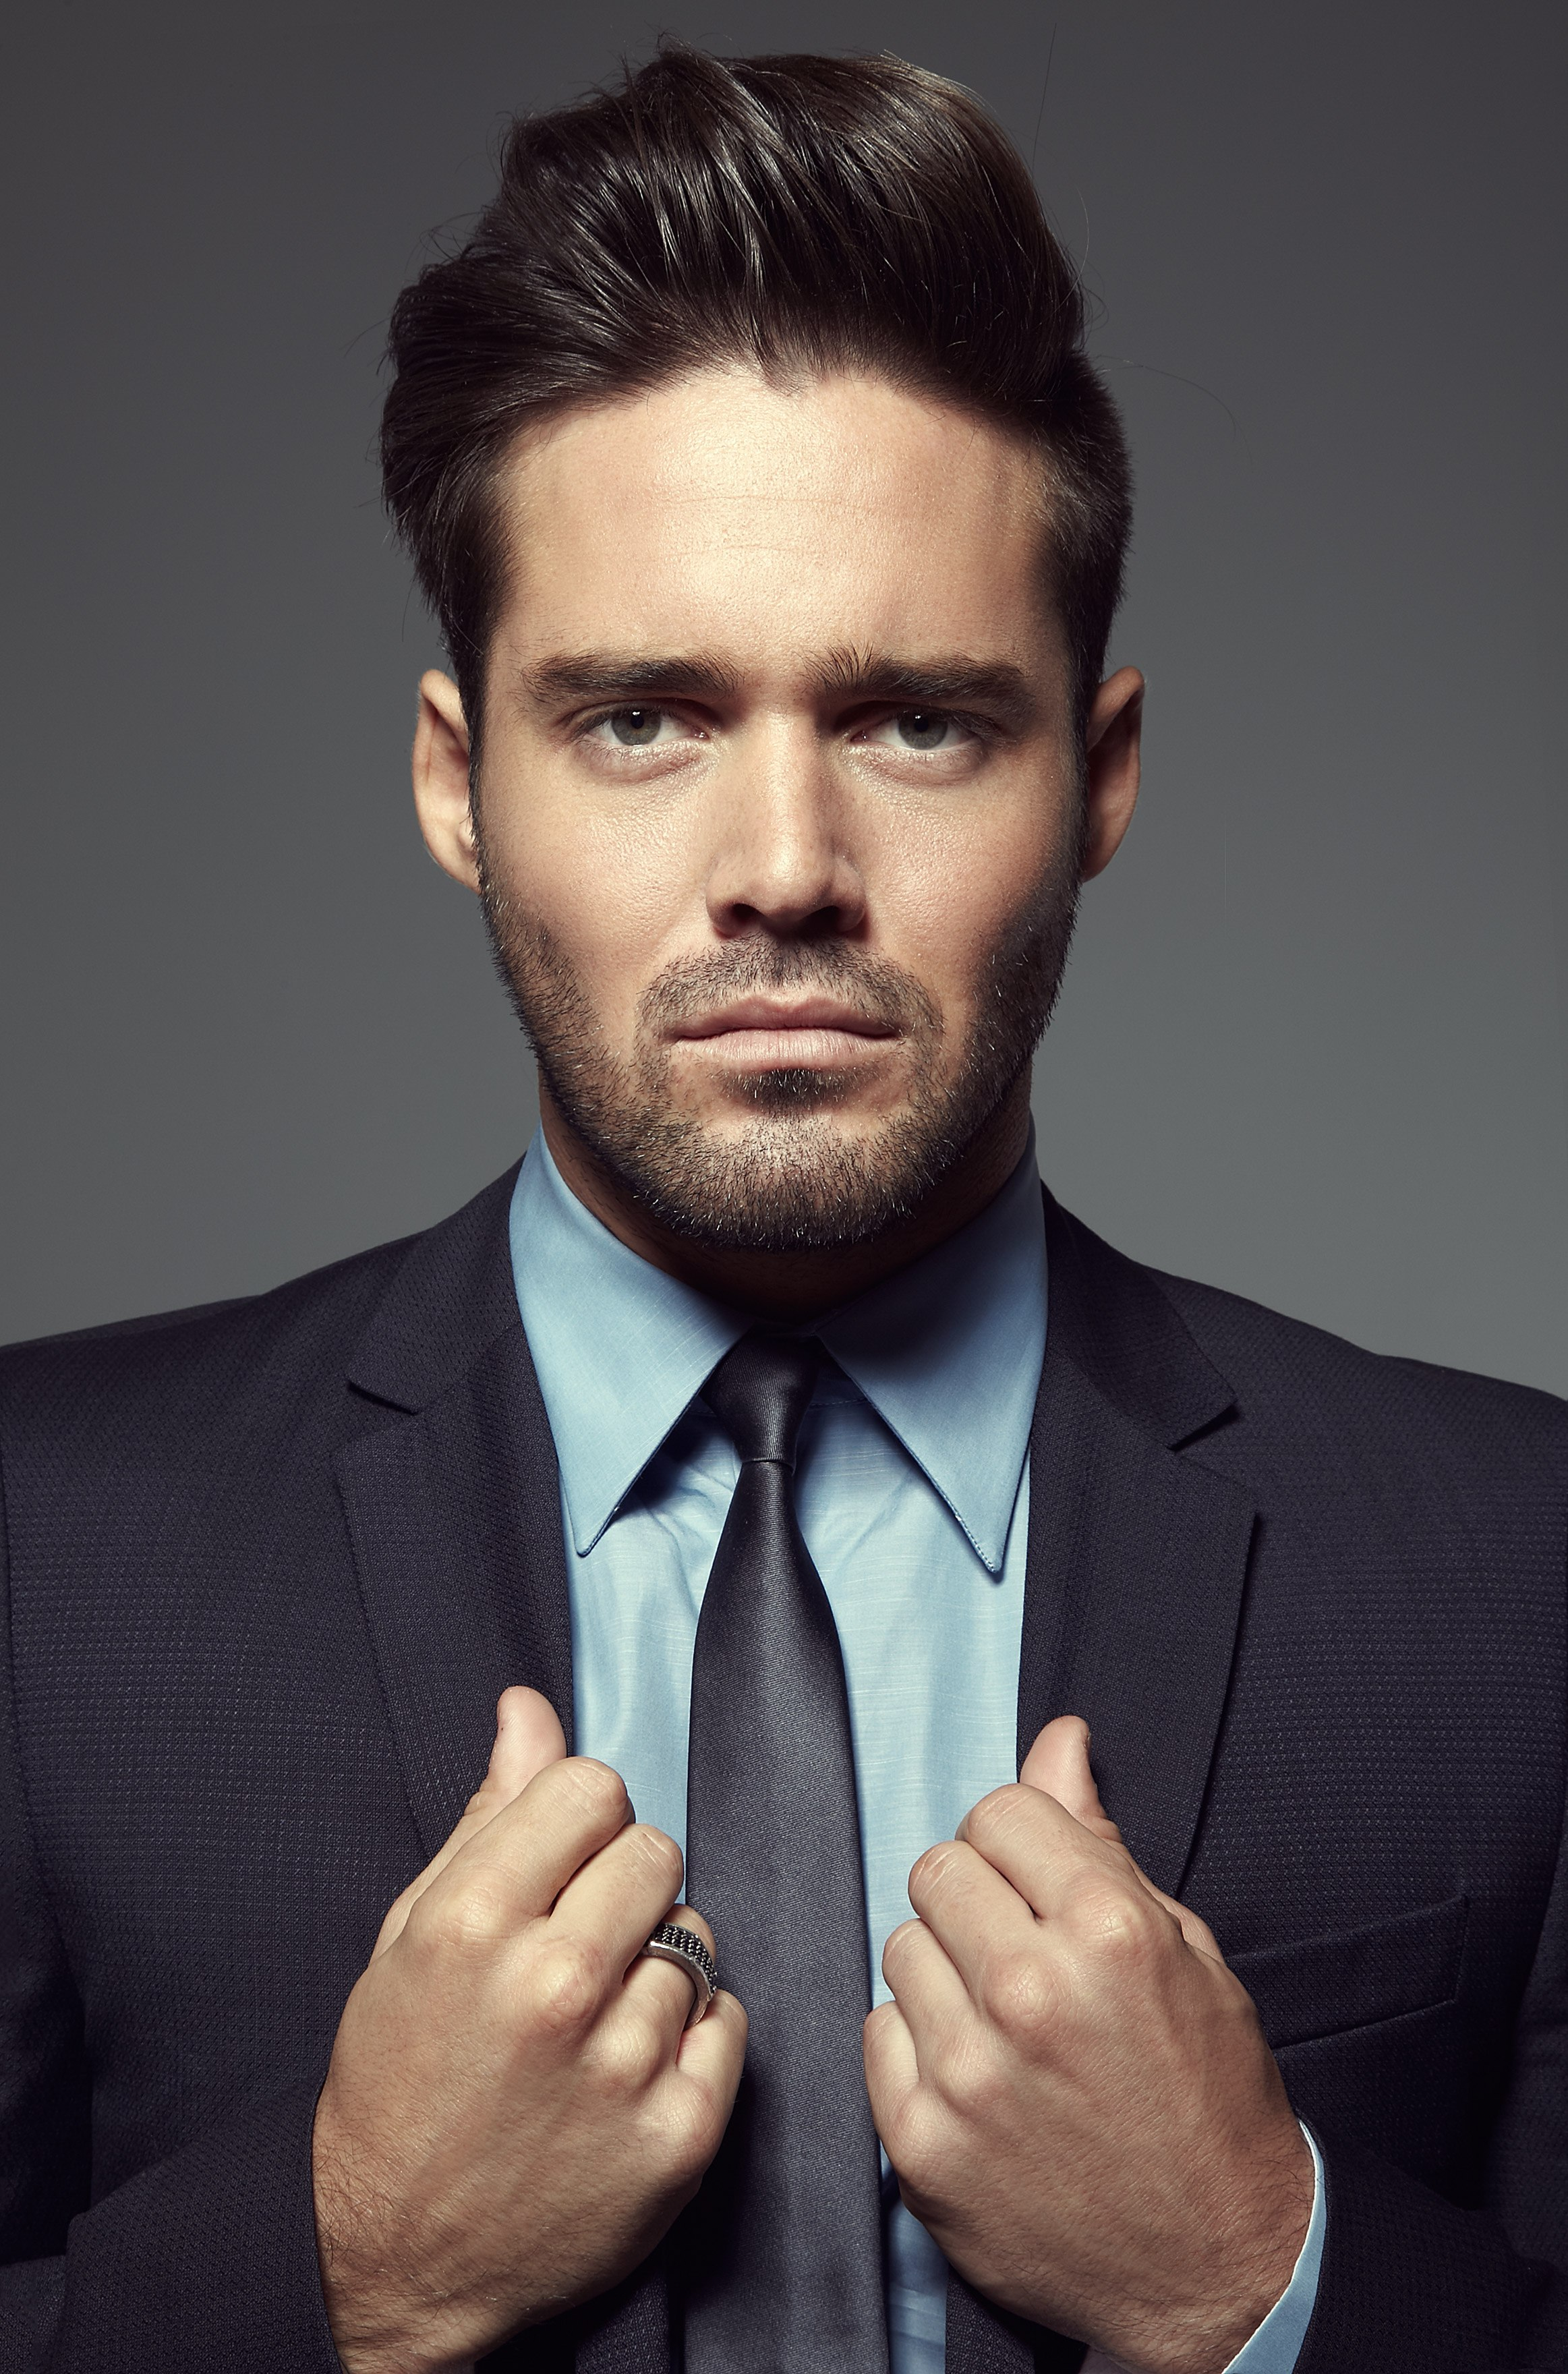 spencer matthews autobiography cover shoot   ruth rose